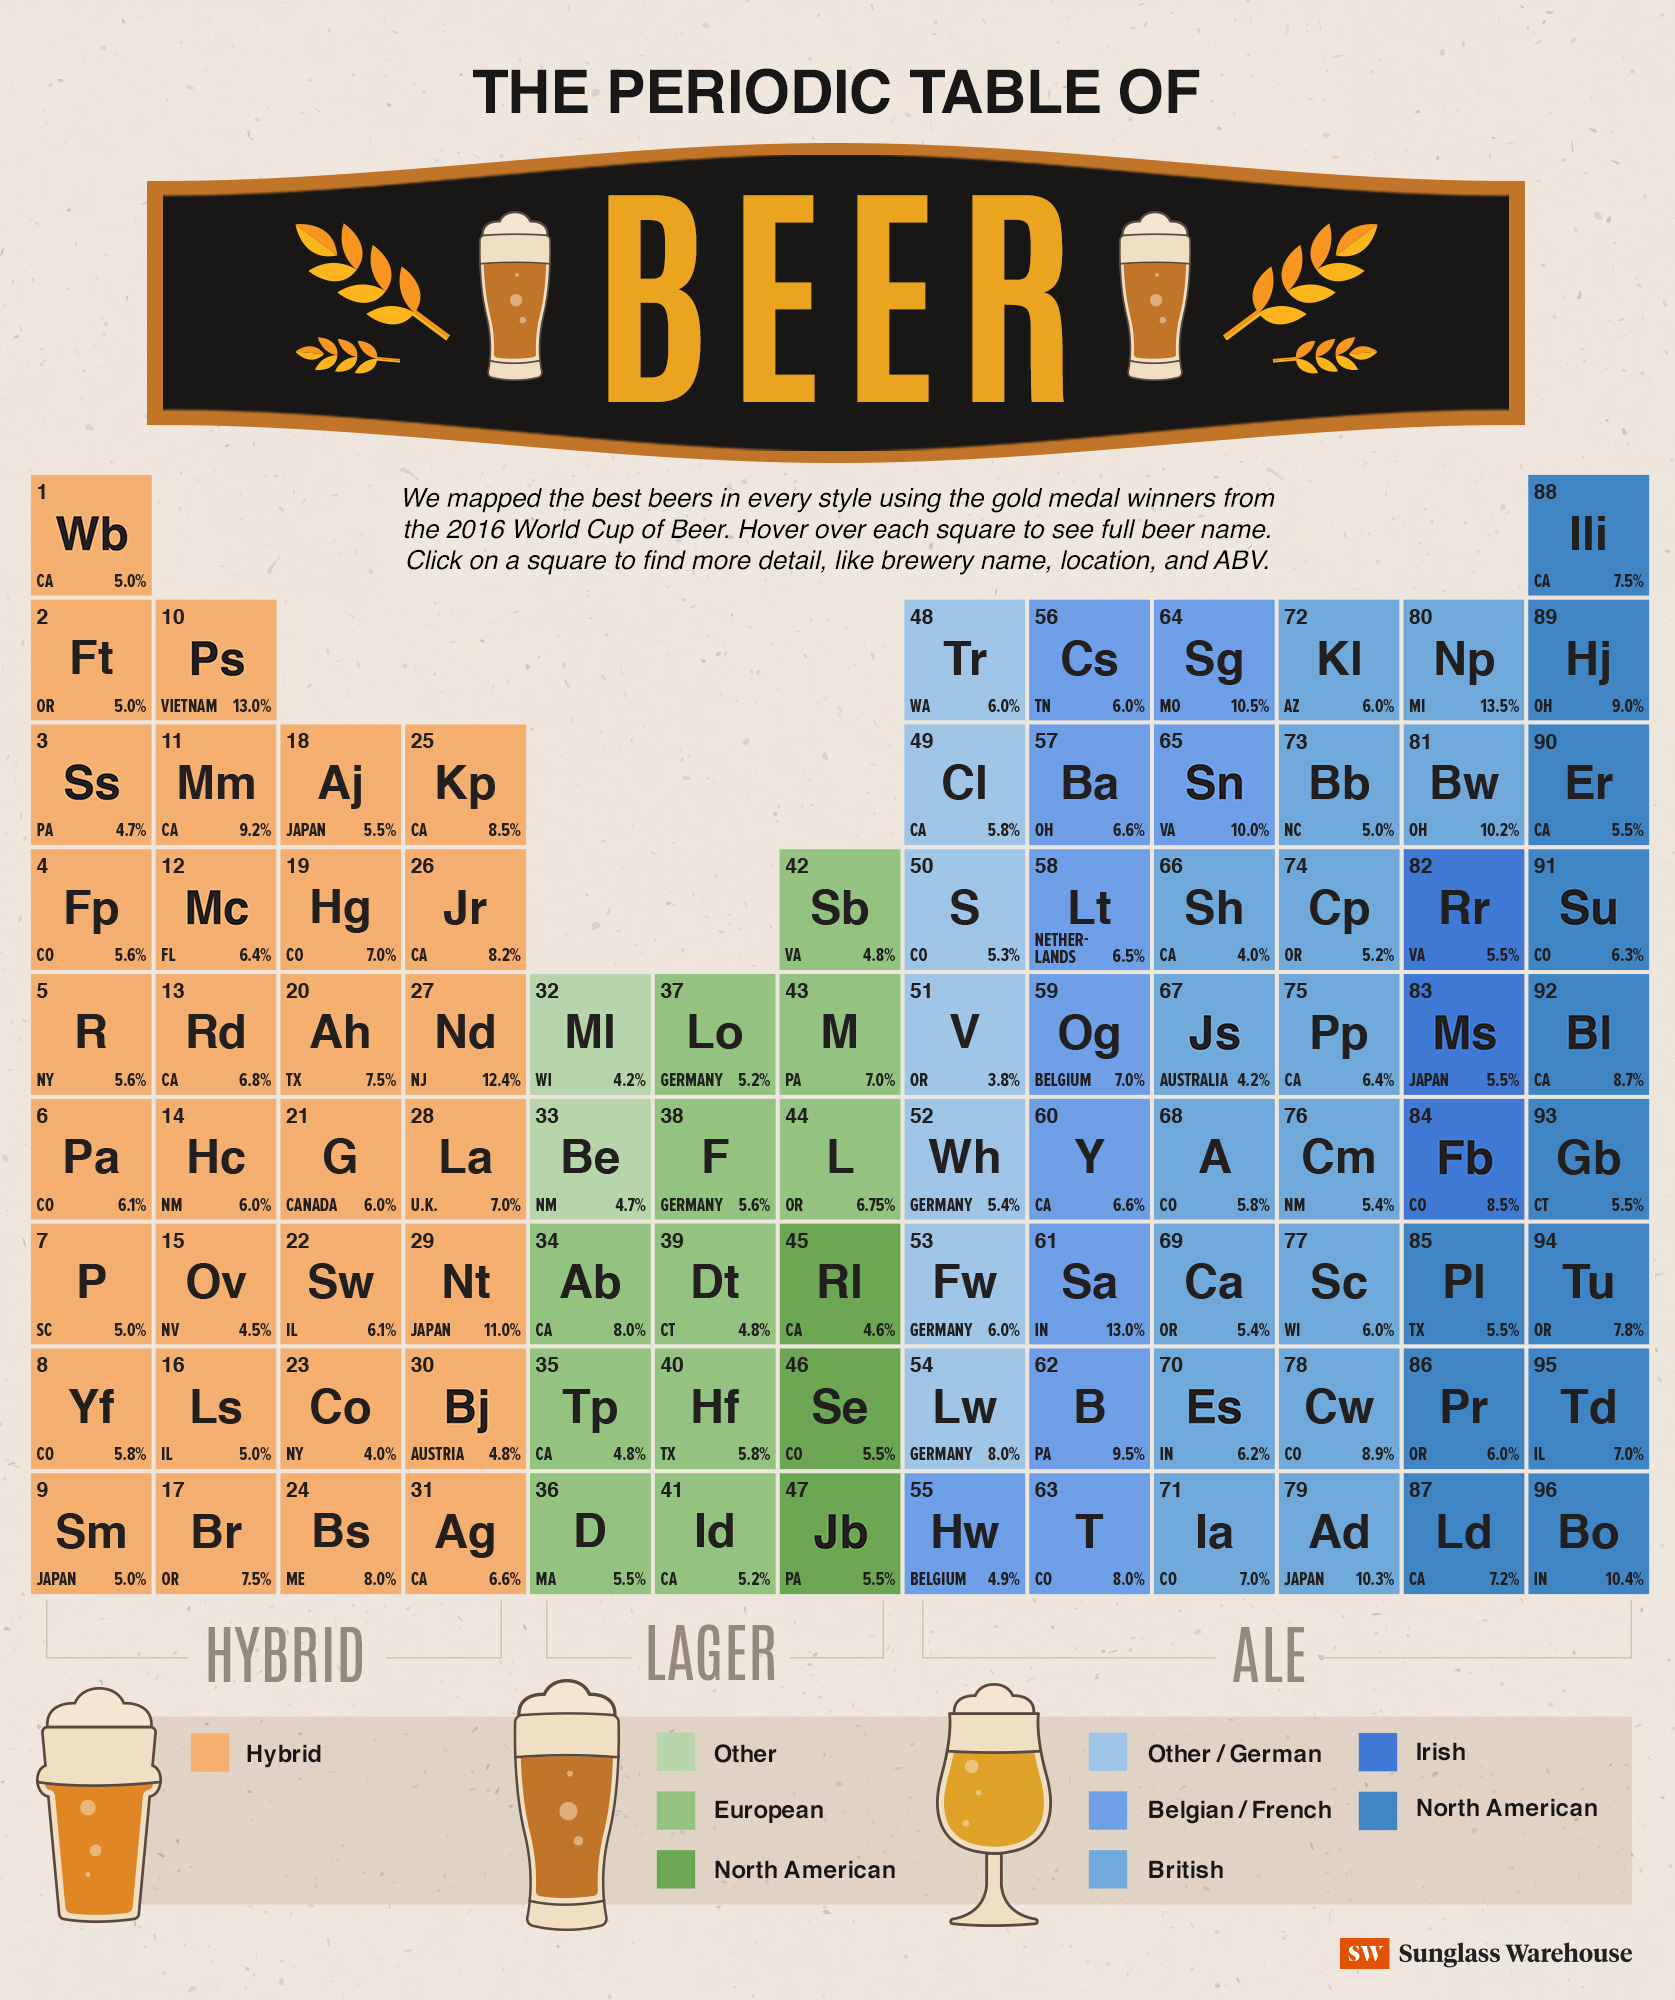 The periodic table of beers sunglass warehouse the periodic table of beer sunglass warehouse gamestrikefo Choice Image